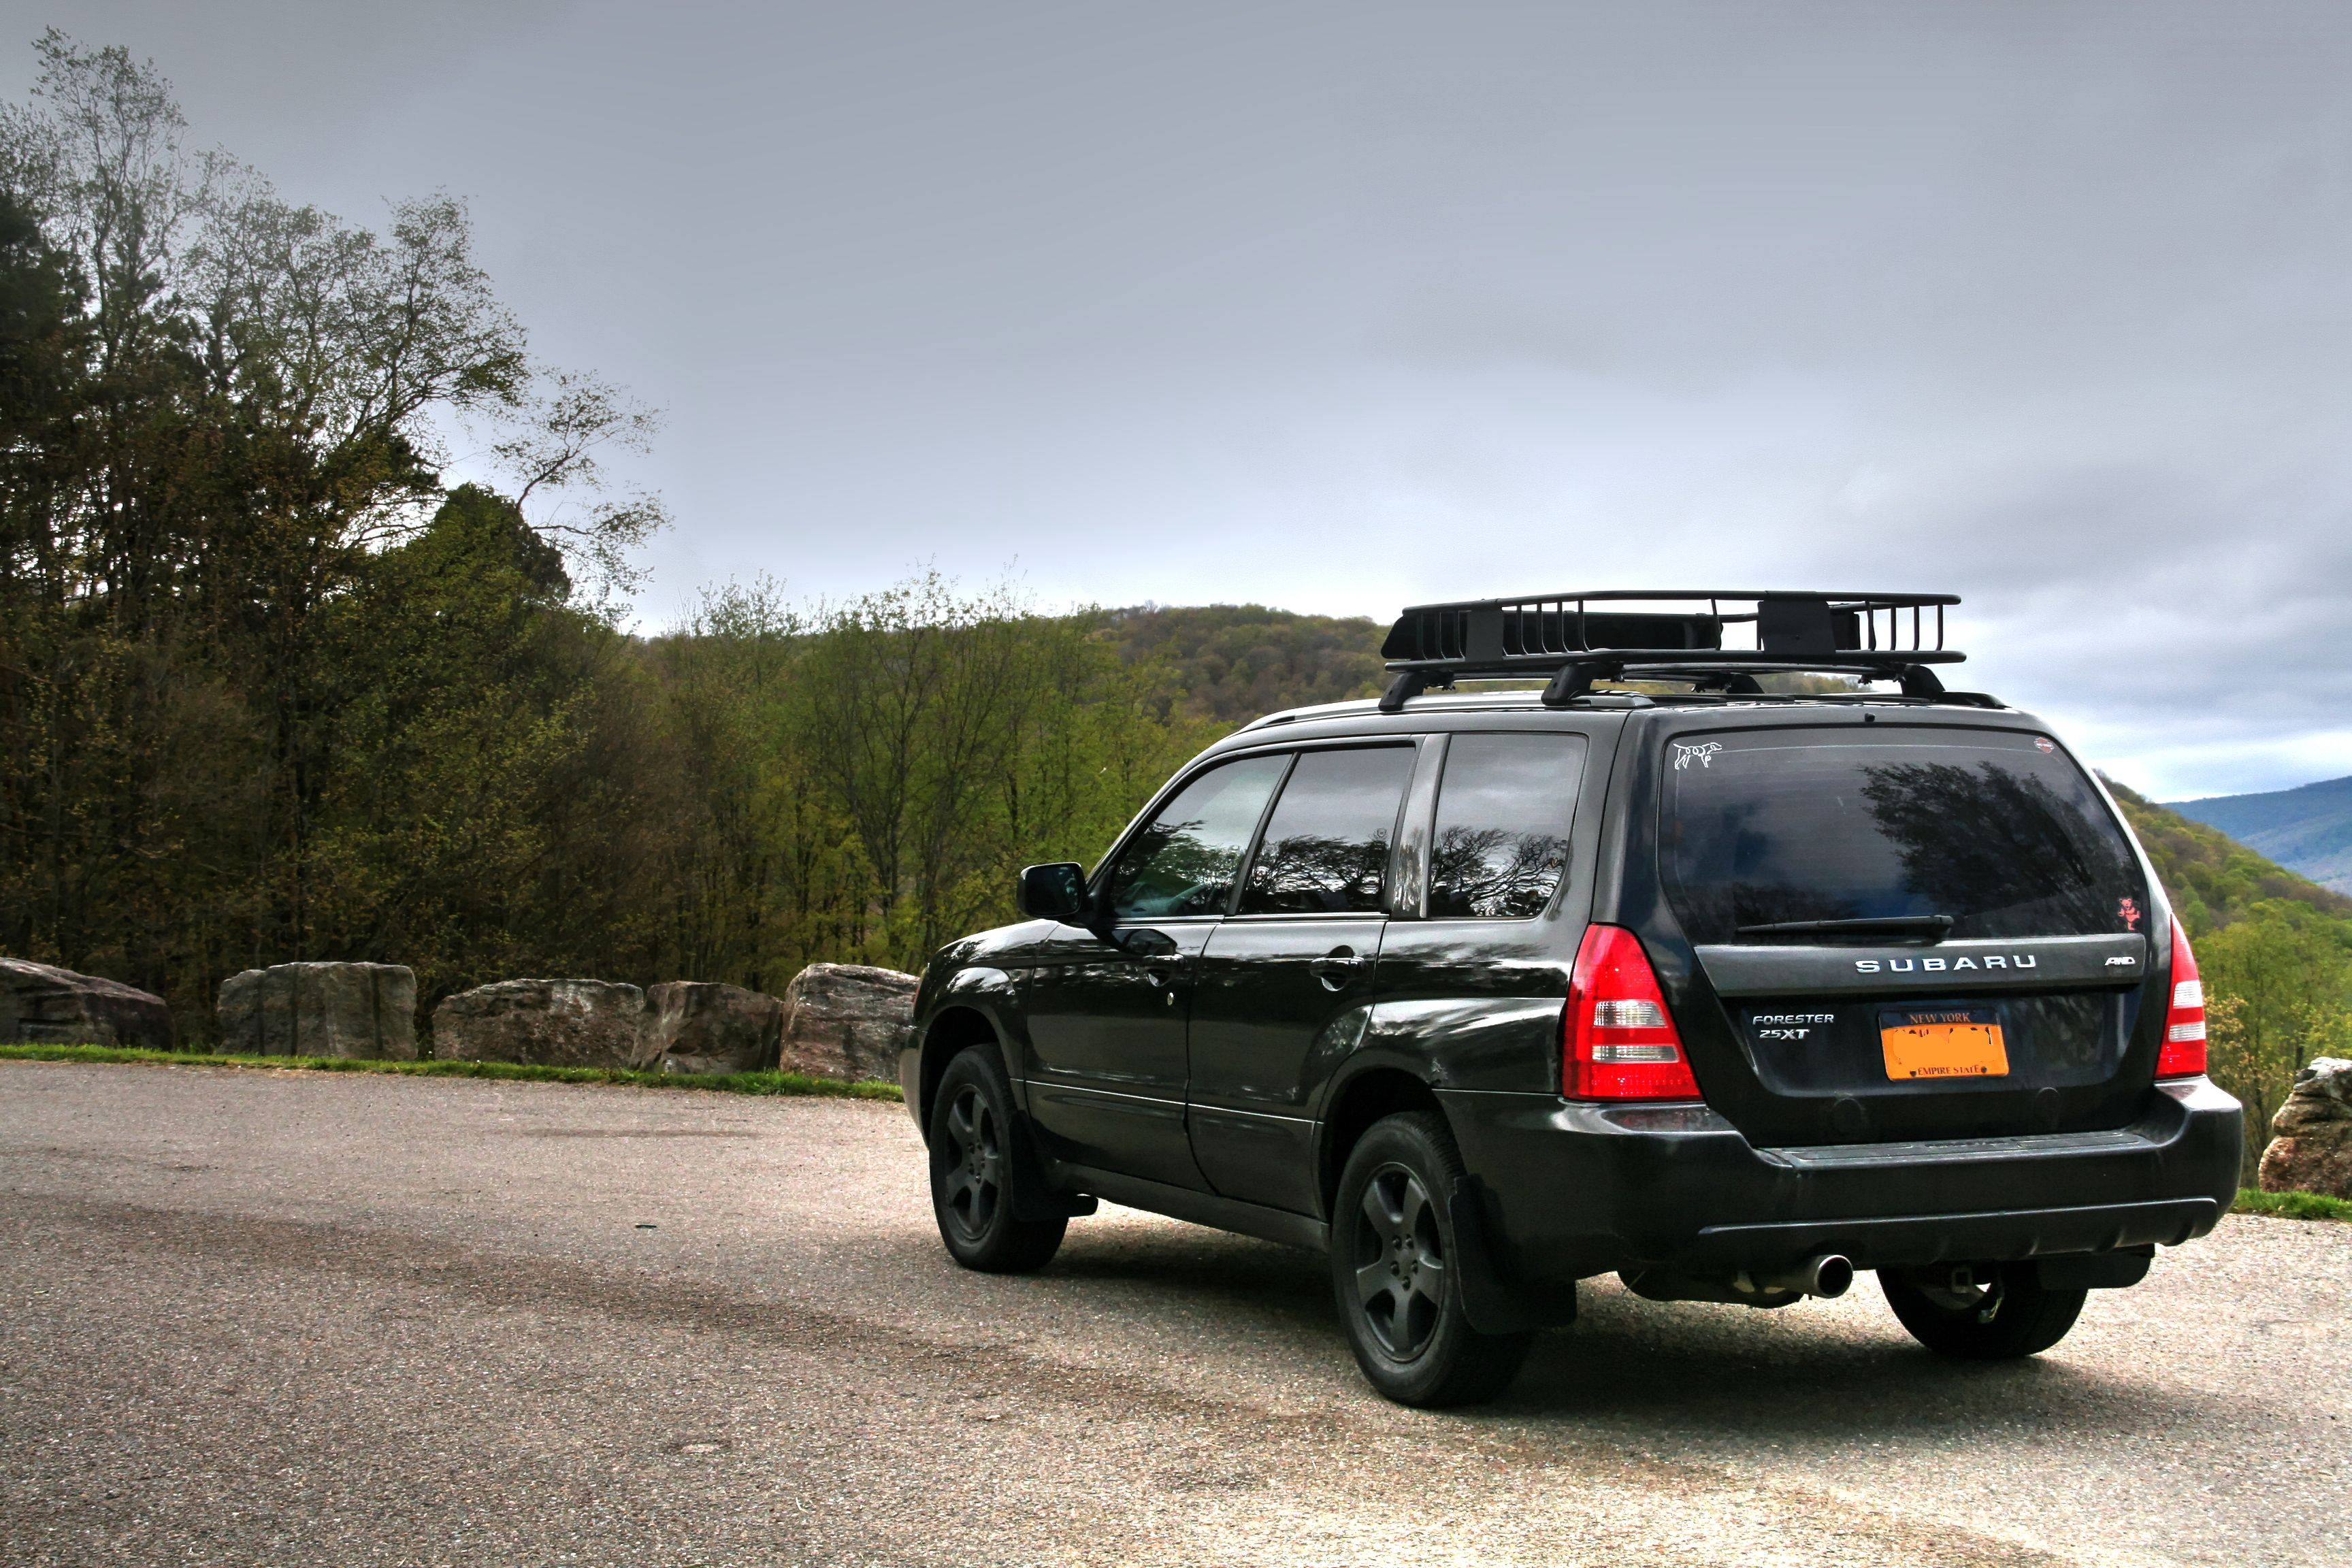 Sg Foz 2004 Java Black Subaru Fxt Turbo Forester In Allegany State Park In Nys Www Turboforester Org Outdoorsubarus Turboforester